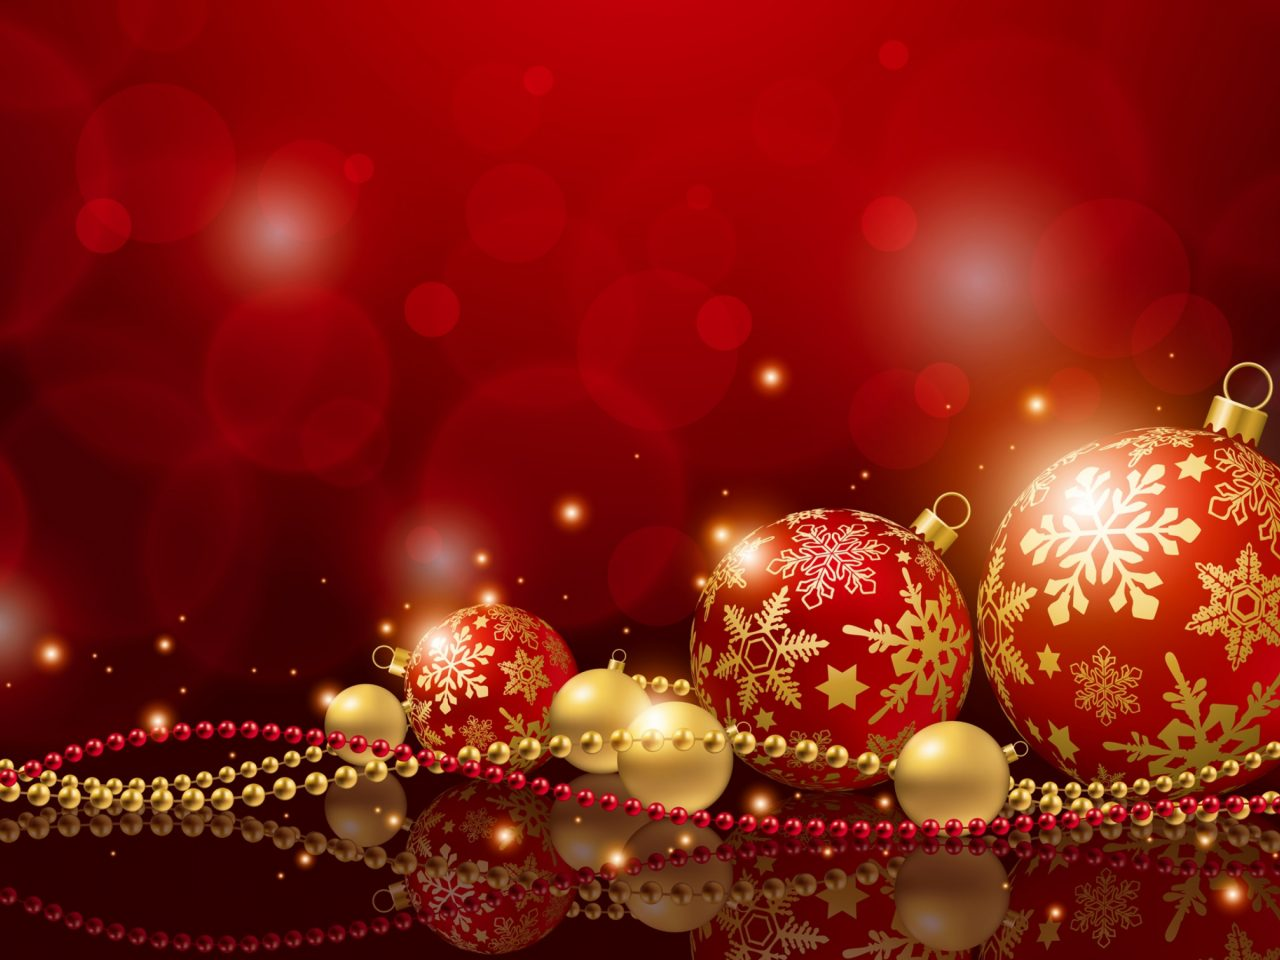 New Years Decorations Christmas Holiday Balls New Year Red 1280x960